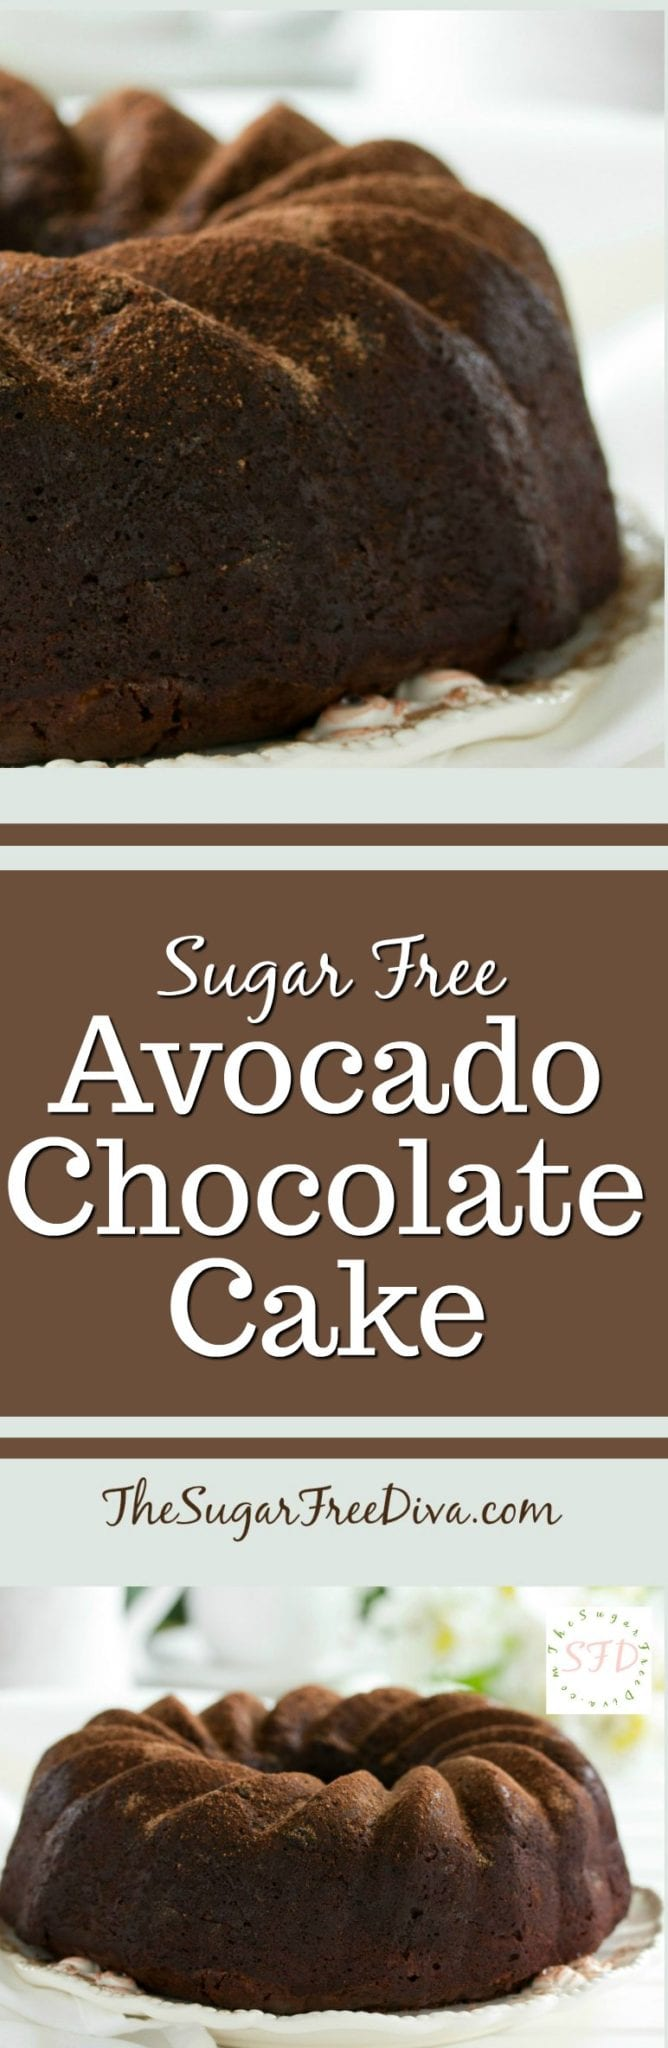 Sugar Free Avocado Chocolate Cake